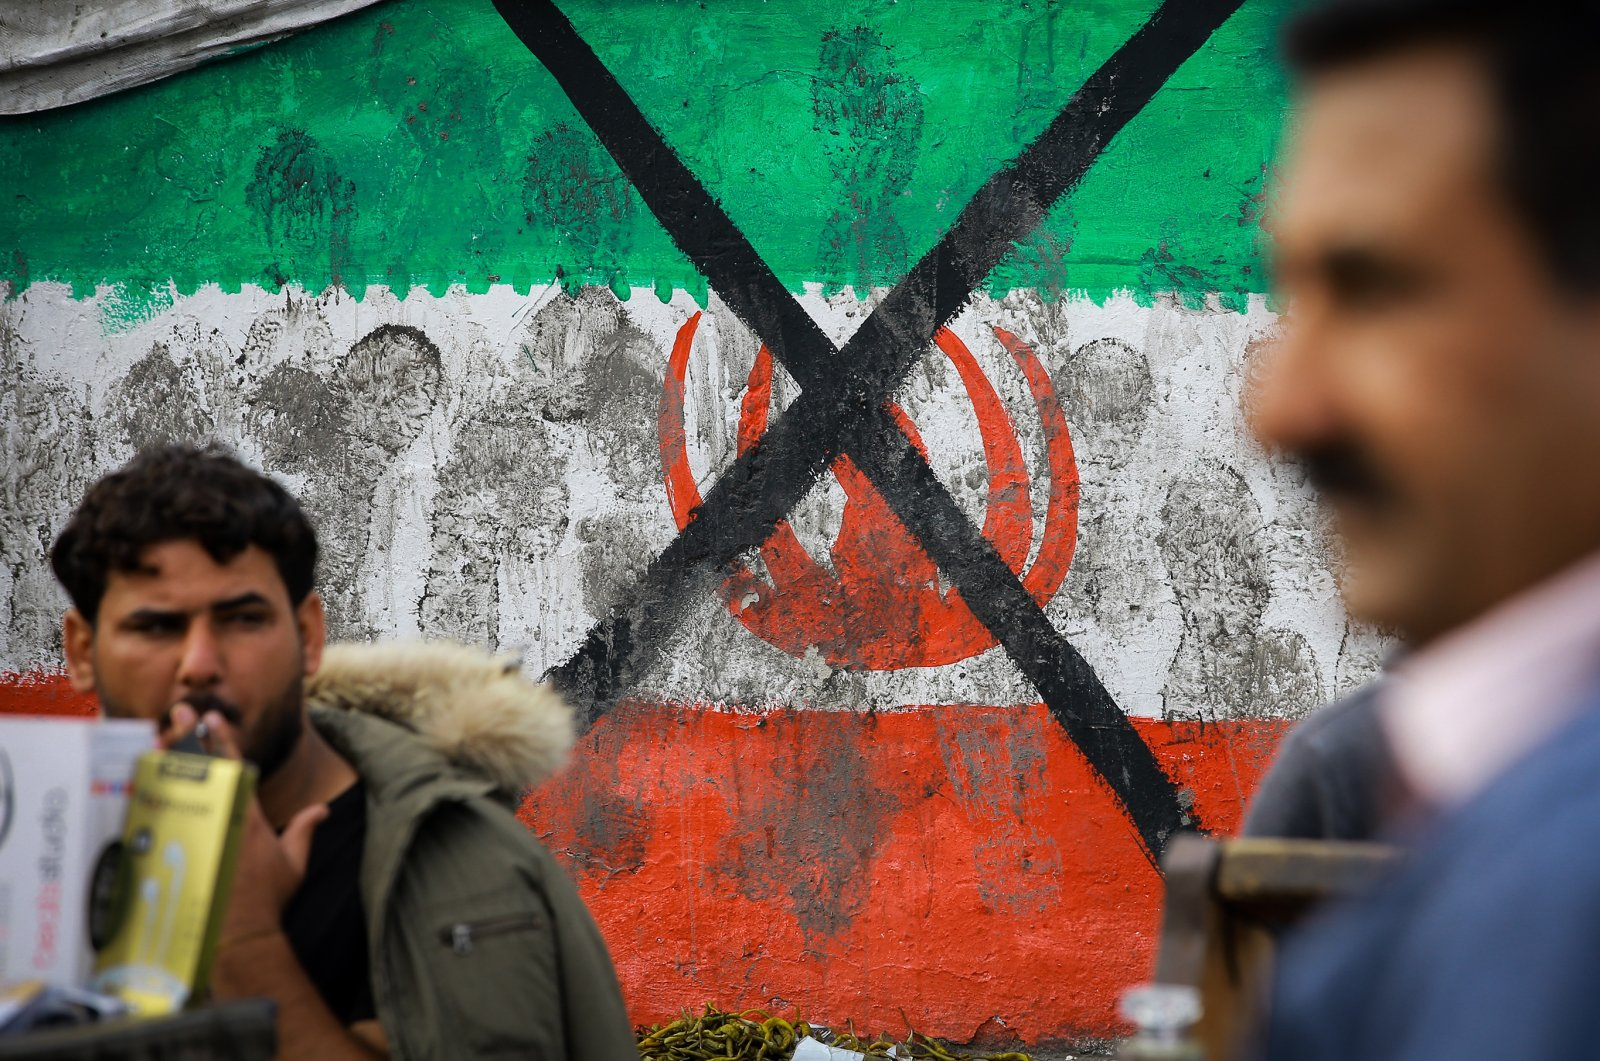 Protestors pass by a defaced painting of the Iranian flag during a rally against the breach of Iraqi sovereignty by the U.S.and Iran, Baghdad, Iraq, Jan. 10, 2020.  (Photo by Getty Images)